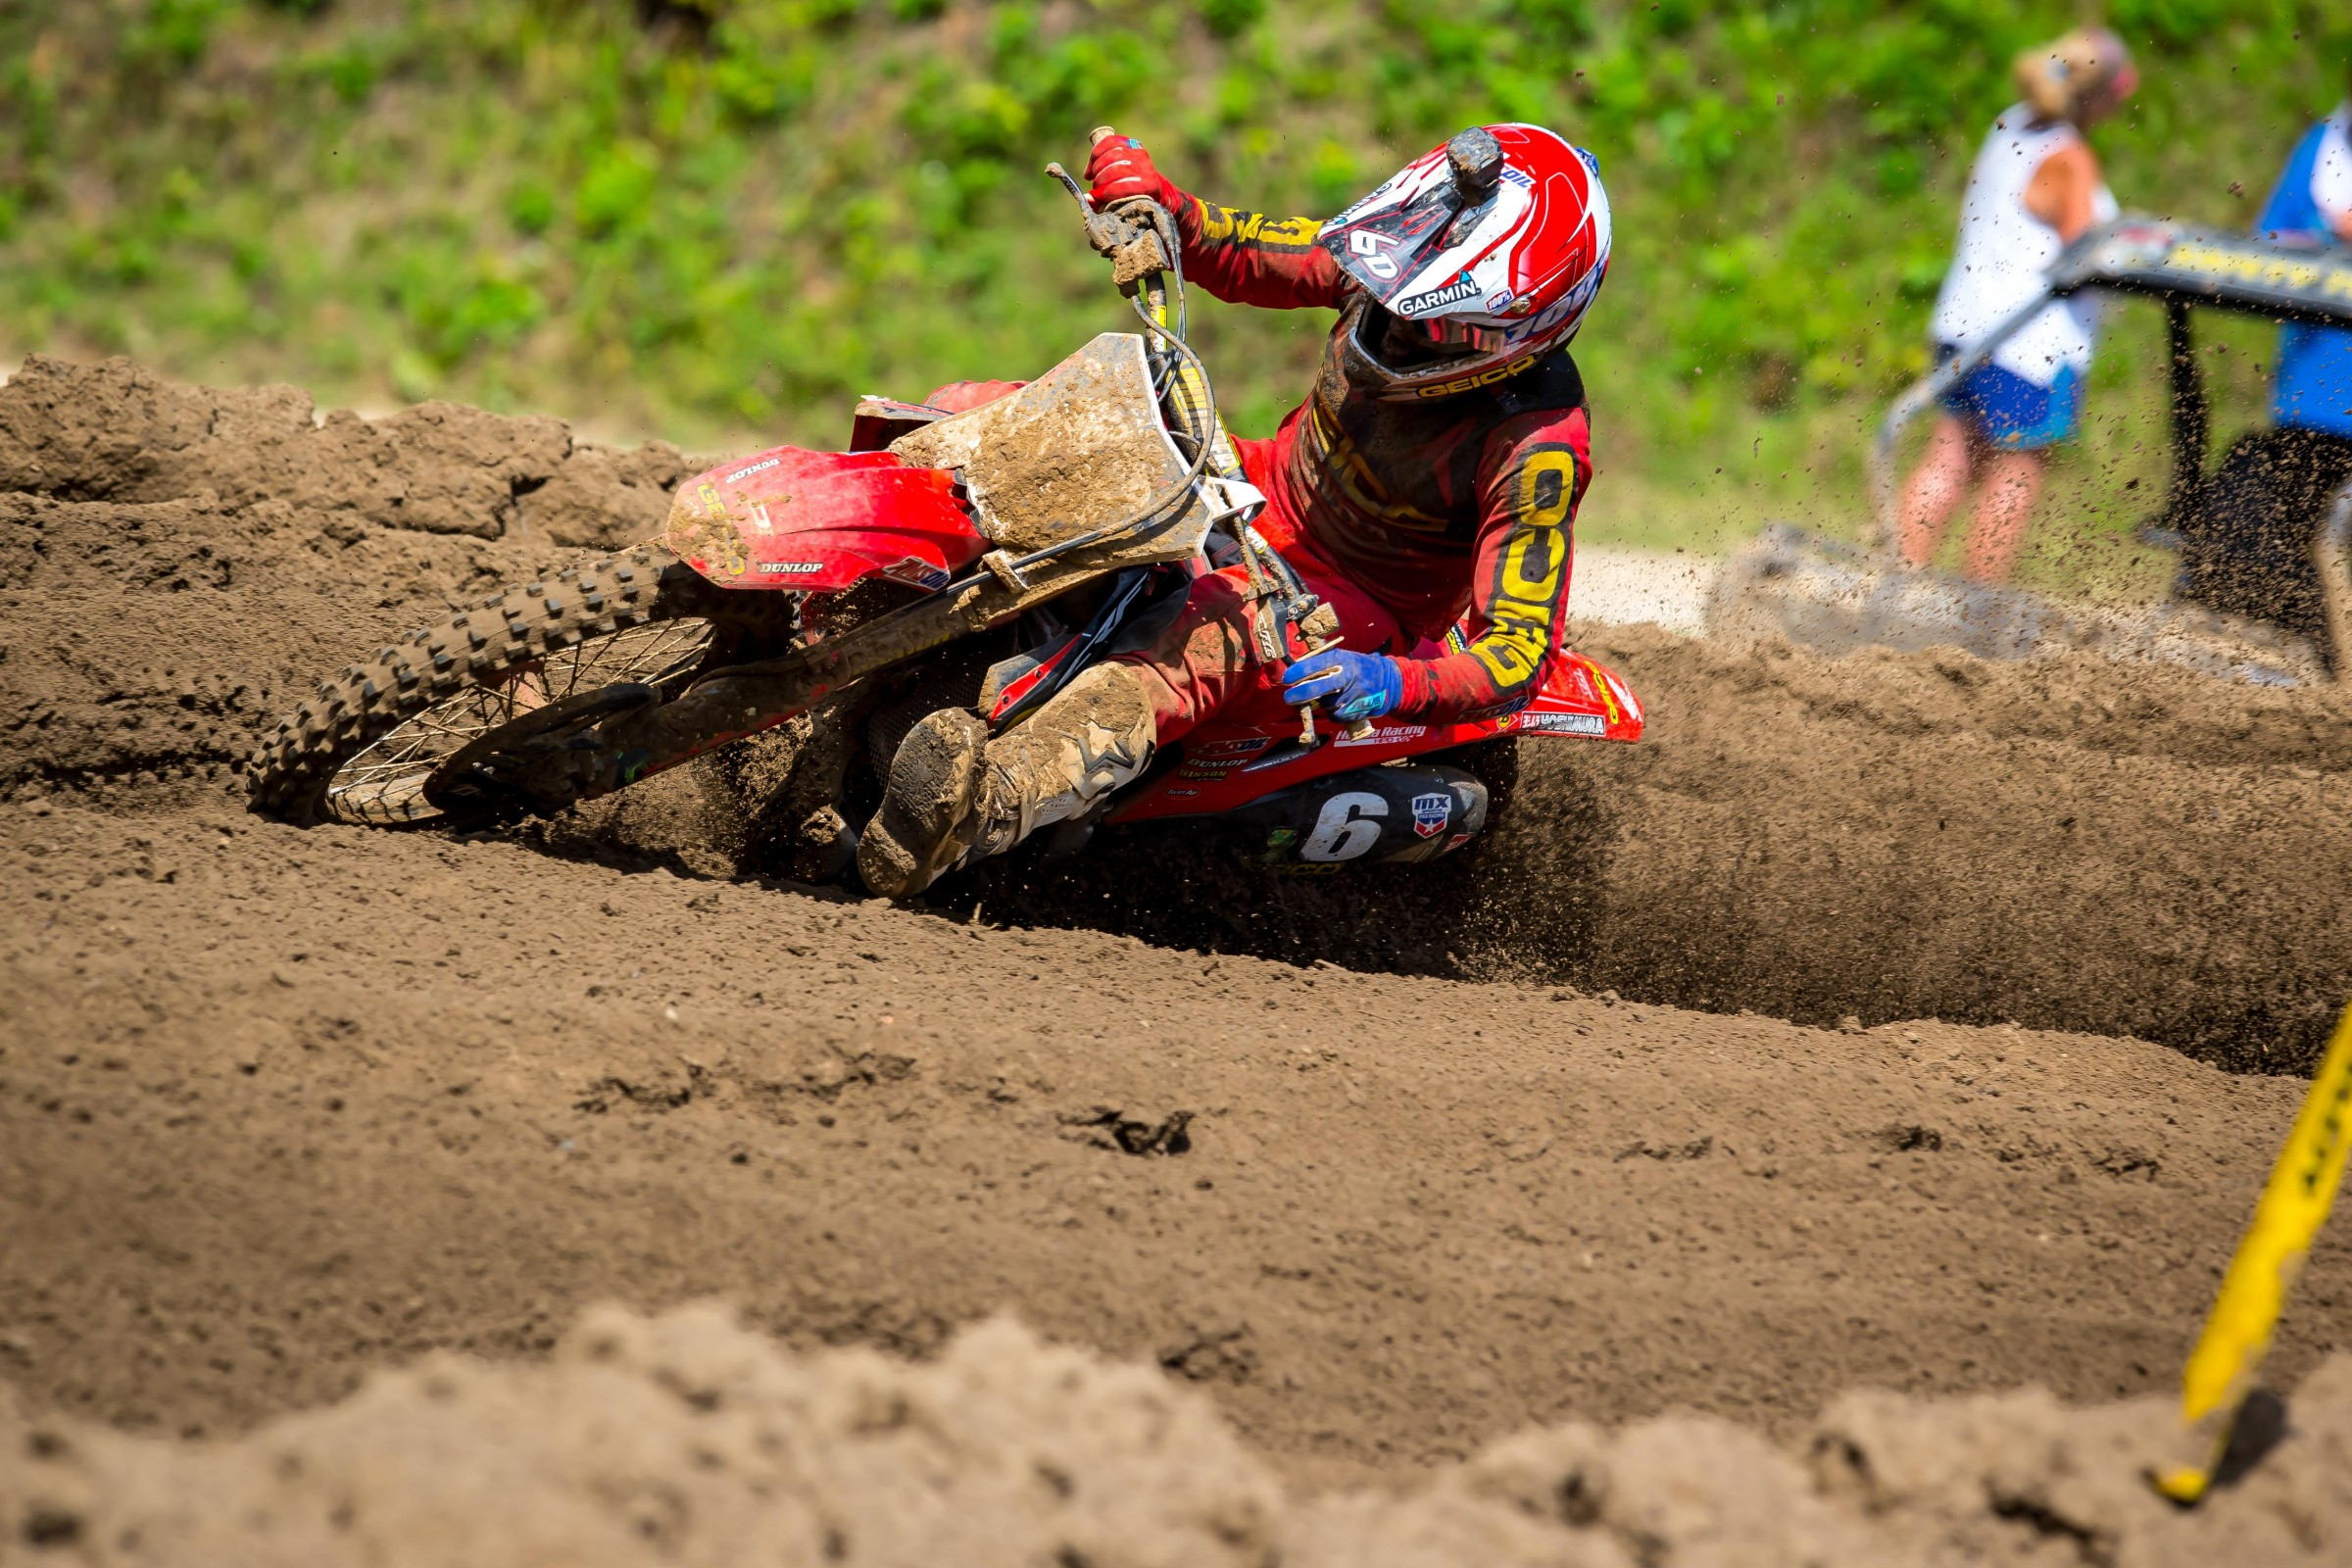 The last time Martin finished fourth overall at Millville was his first full season in 2013.